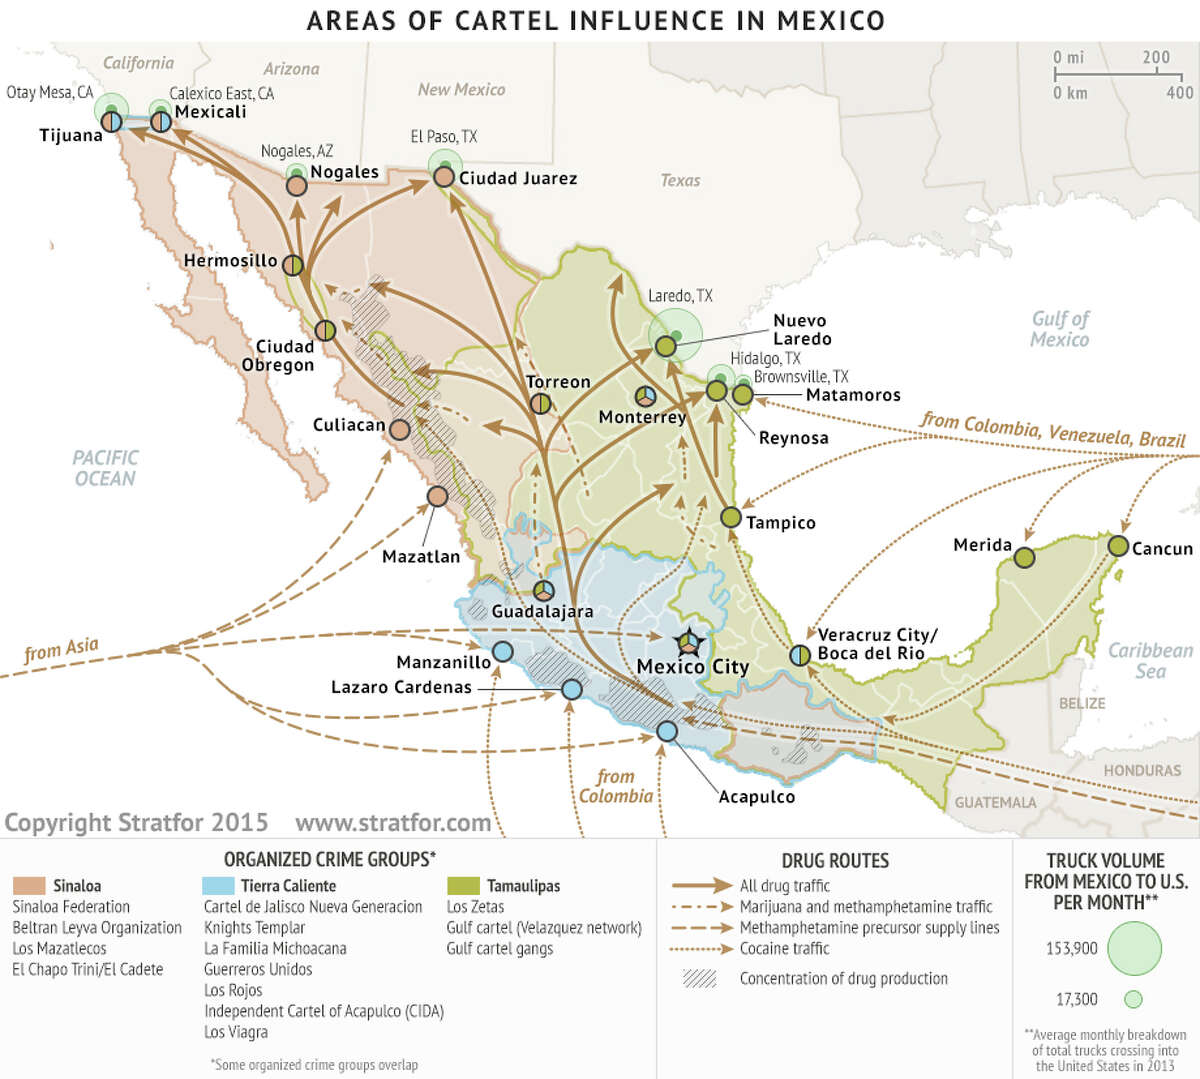 2. Where do they operate?According to a graphic provided by Stratfor Global Intelligence Agency, the cartel occupies the gulf side of Mexico such as Coahuila, Nuevo Leon, Tamaulipas, Vera Cruz, Tabasco, Campeche and the Yucatan.